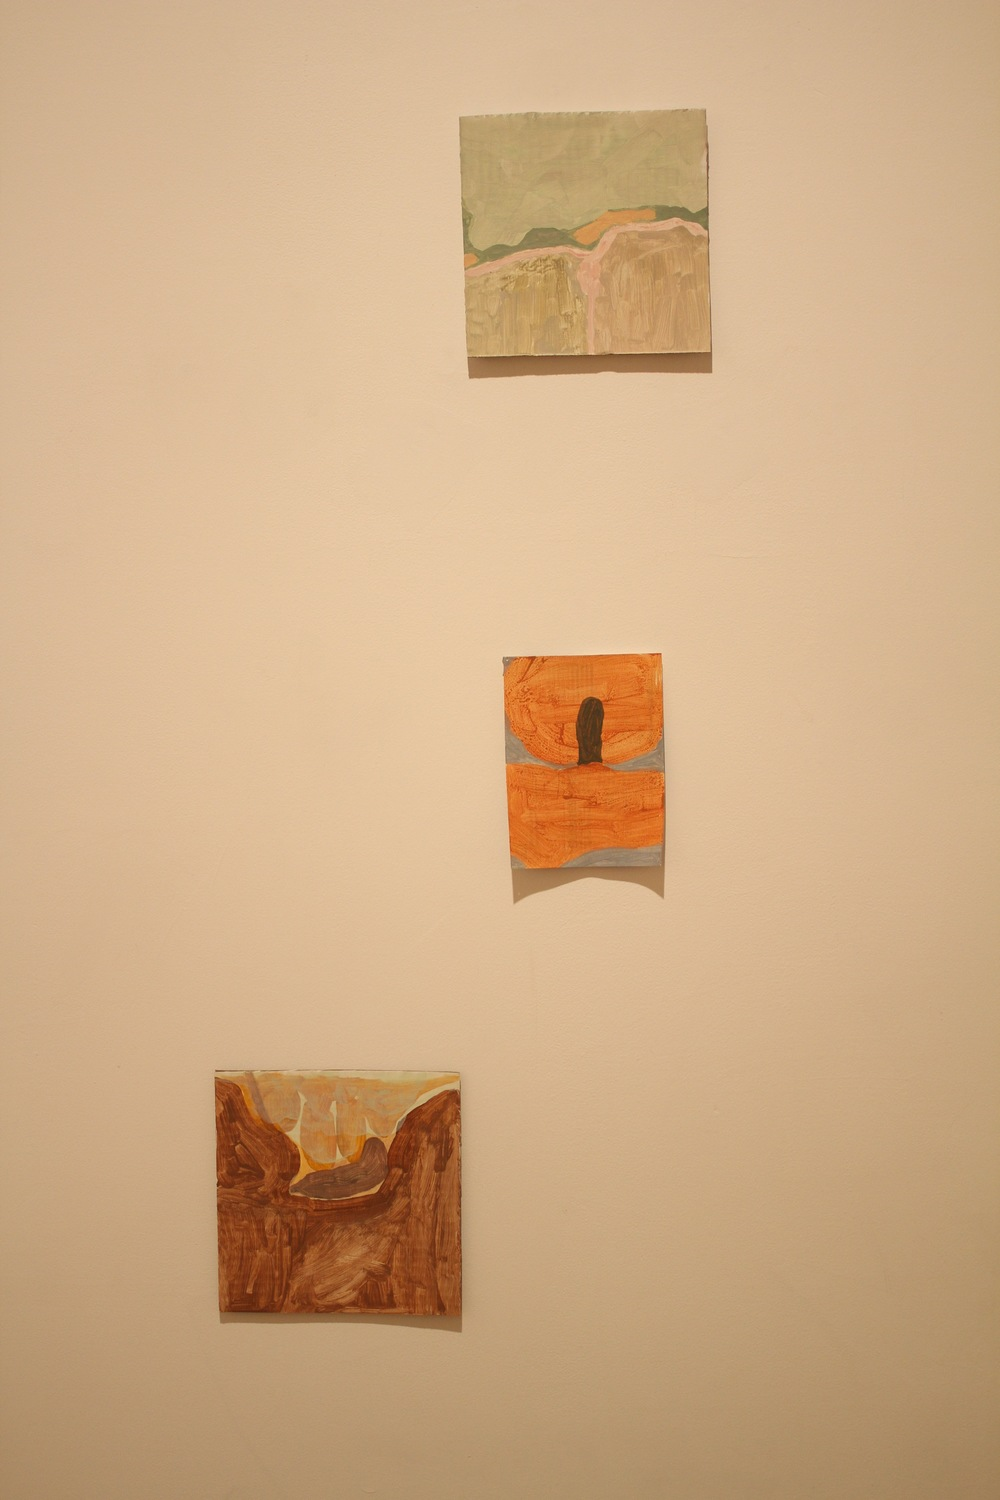 "T. Belge Plains. 2015. Acrylic on Cardboard (6 1/4""x 6 1/2"")  M. Insertion (spray tan scape). 2015. Acrylic on Paper (5 1/2""x 4 1/4"")  B. Wedged. 2015. Acrylic on Cardboard (6 5/8""x 6 5/8"")"